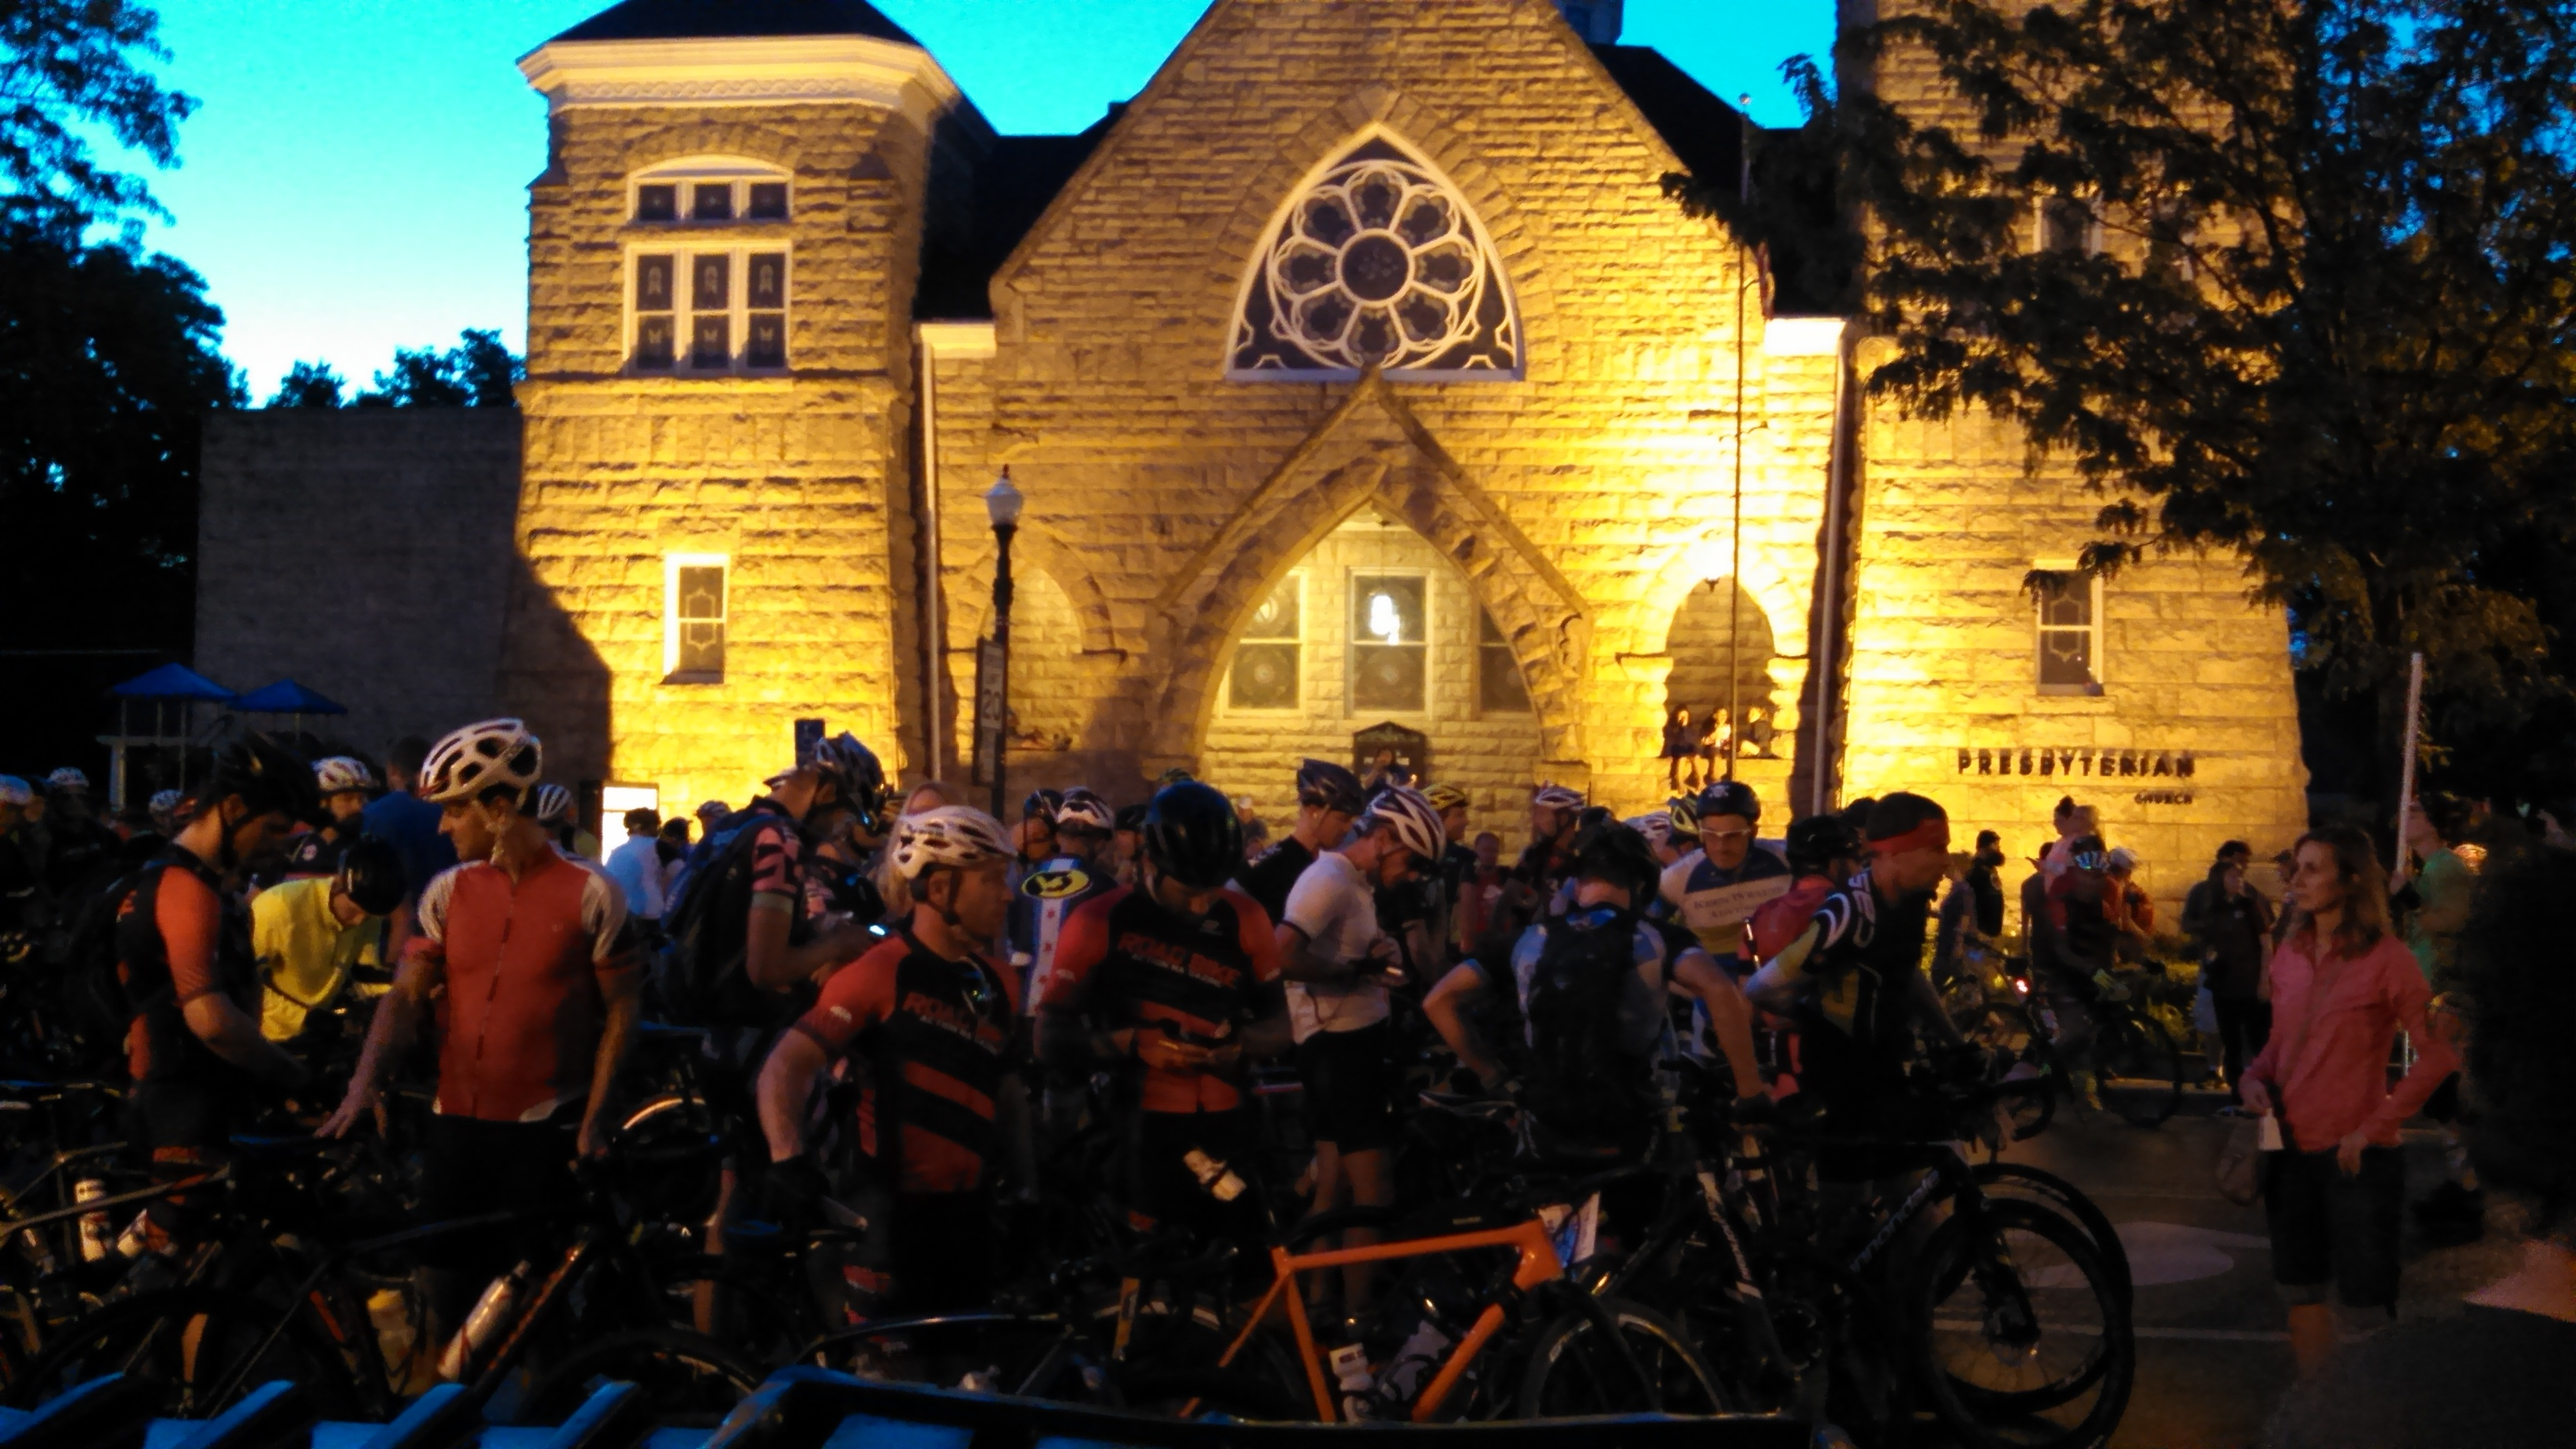 About 2,000 cyclists gathered in Emporia over the weekend for the 2016 Dirty Kanza, a grueling race through the Flint Hills. (Photo by Greg Echlin)